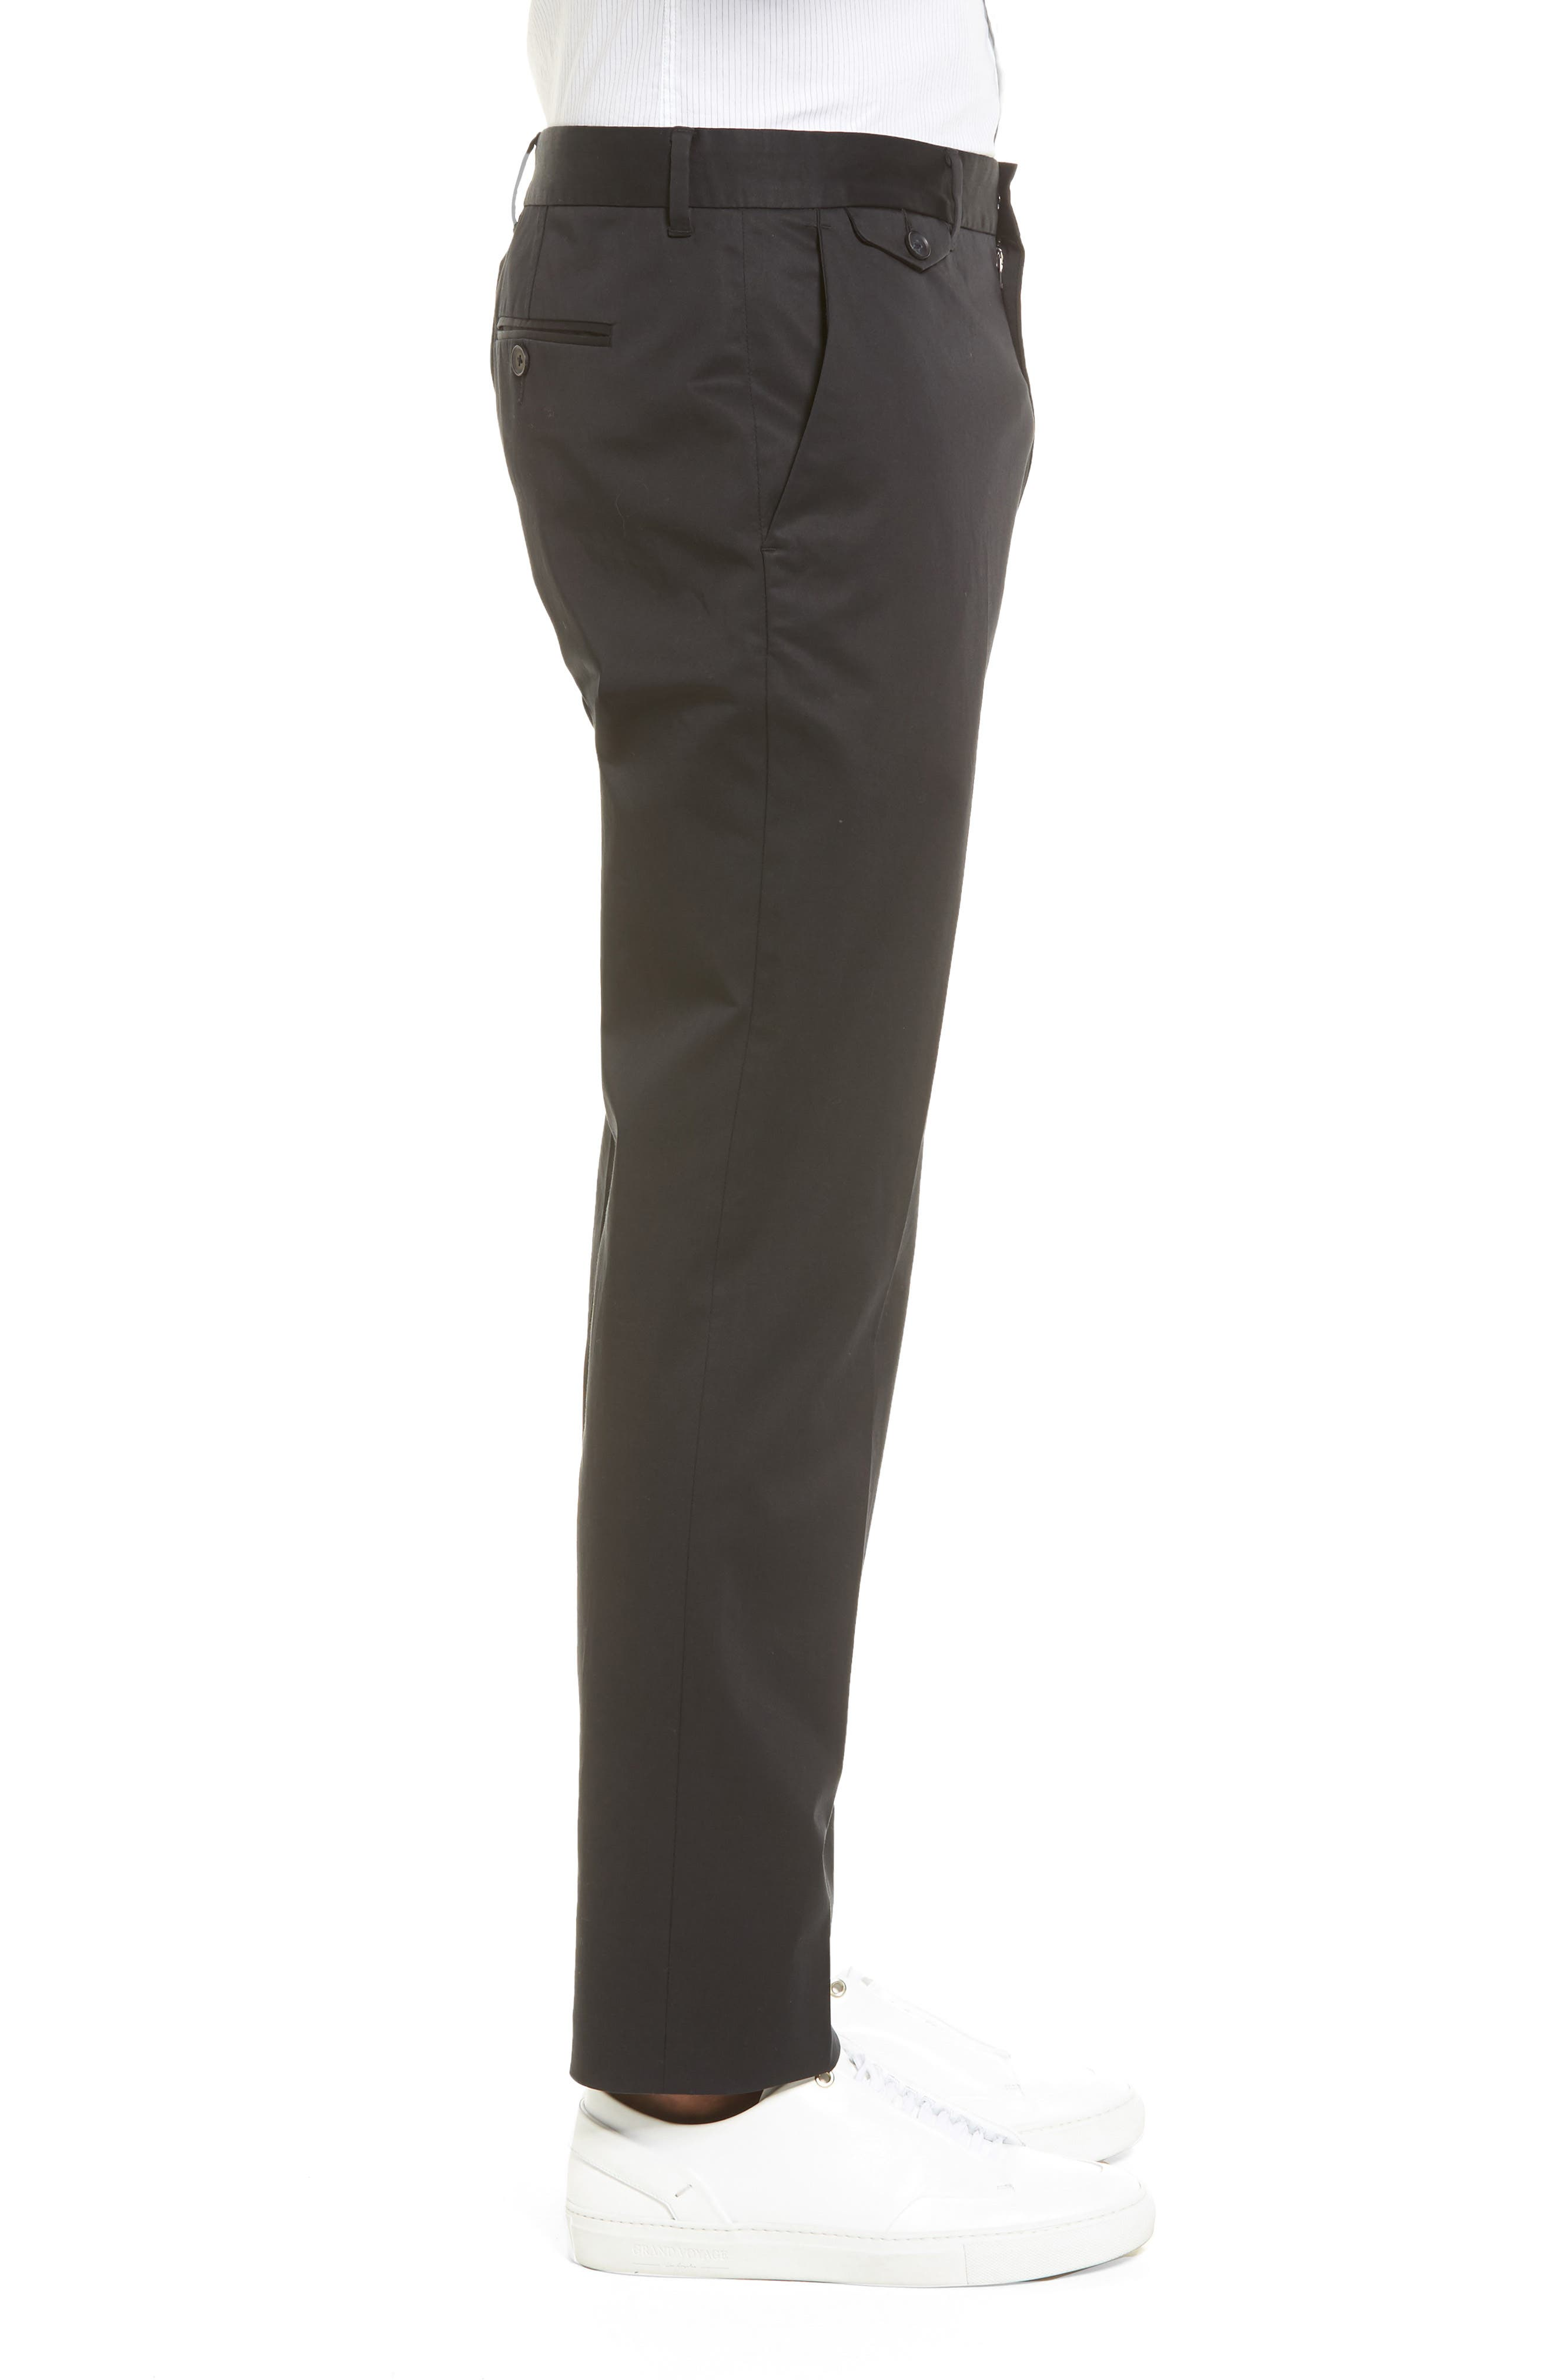 Officer Flat Front Chino Pants,                             Alternate thumbnail 3, color,                             001